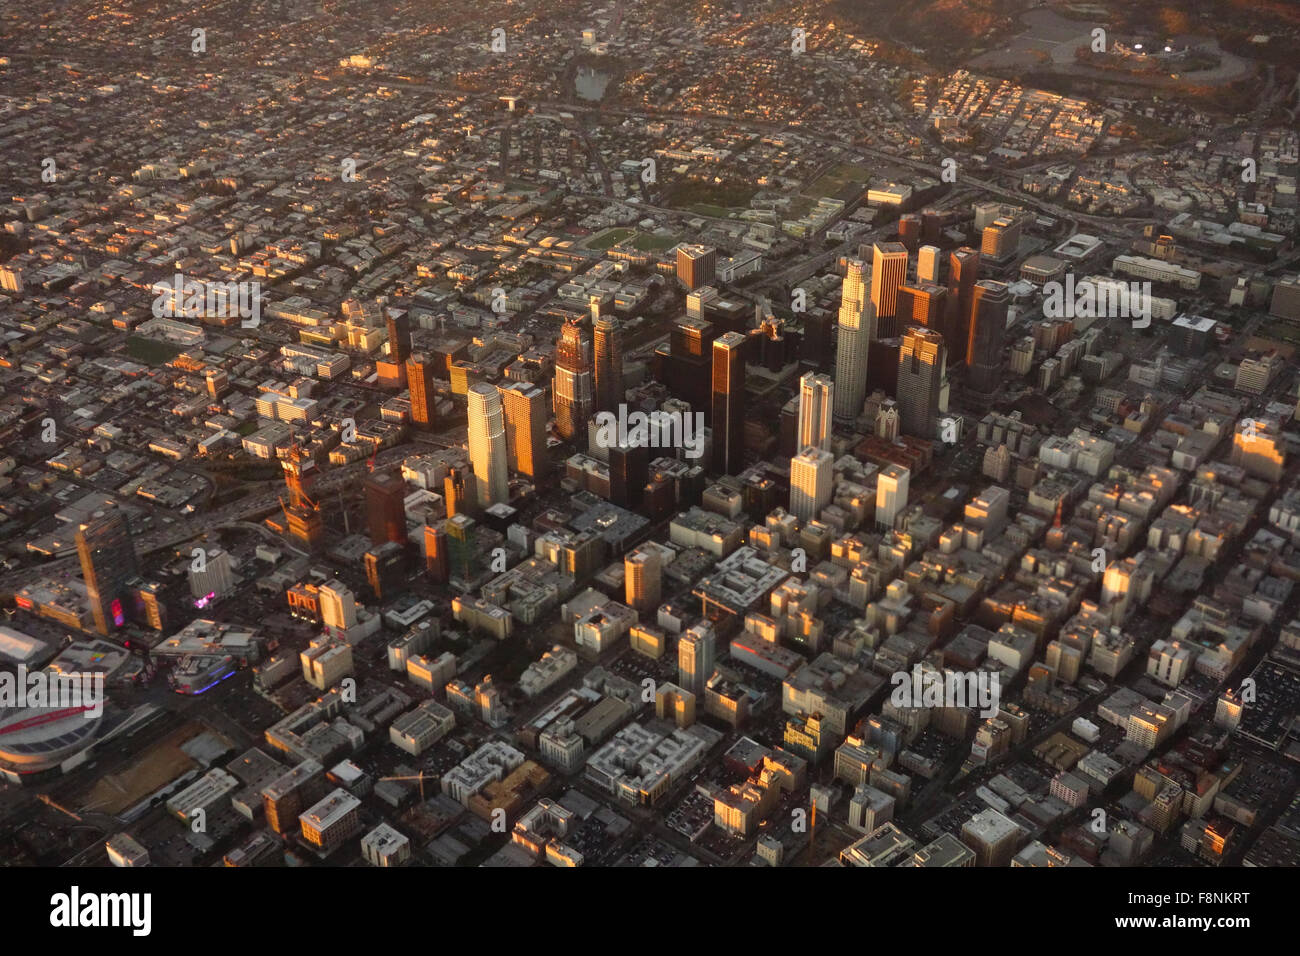 urban sprawl of city downtown Los Angeles from the air Southern California USA - Stock Image